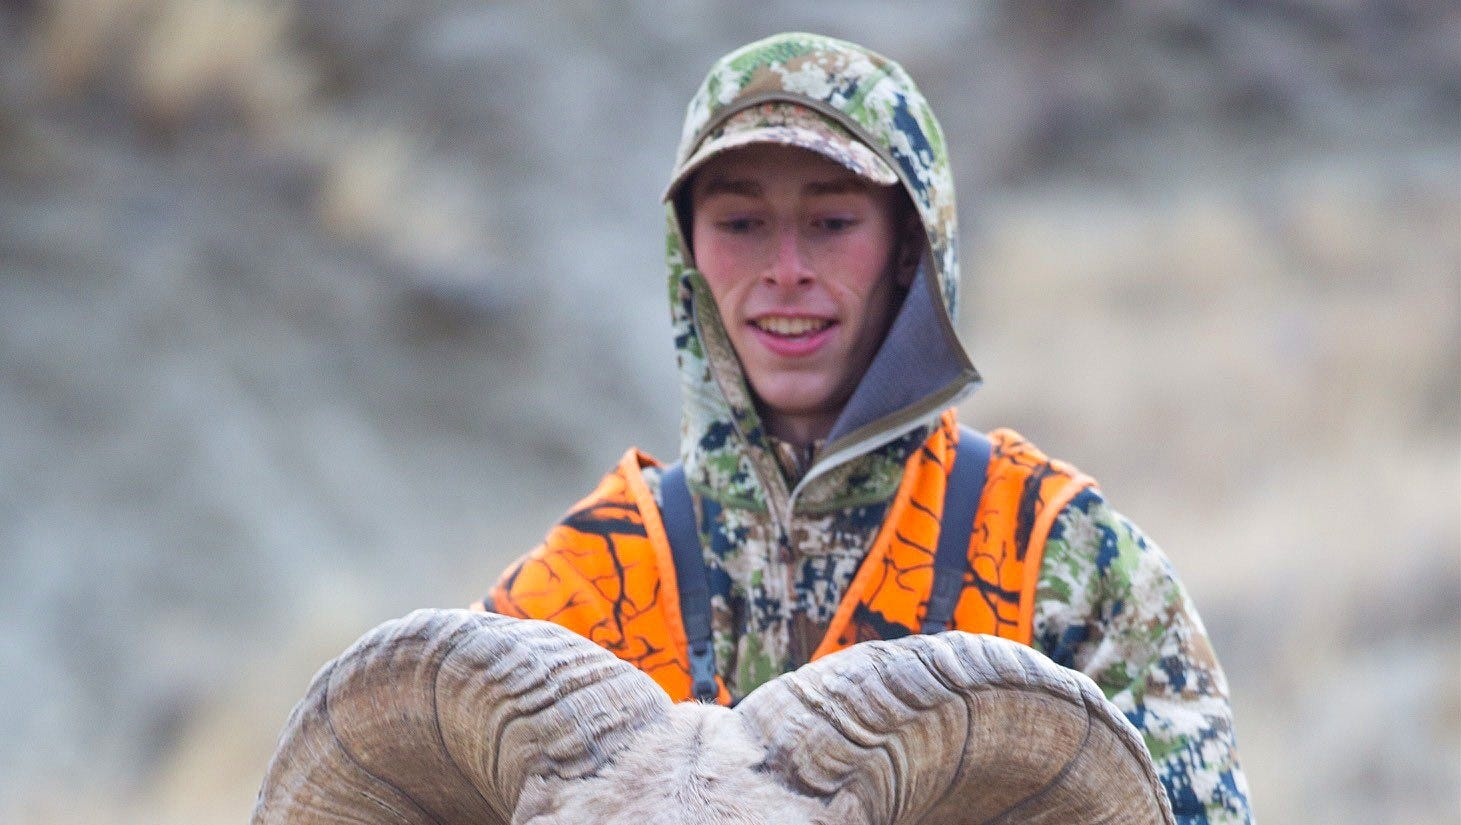 Justin Sheedy holds the horns of the bighorn sheep he shot last October while hunting in the Missouri River Breaks. The ram has scored 208 3/8, good enough to tie the current world record hunter-shot ram based on the Boone and Crockett Club scoring system.